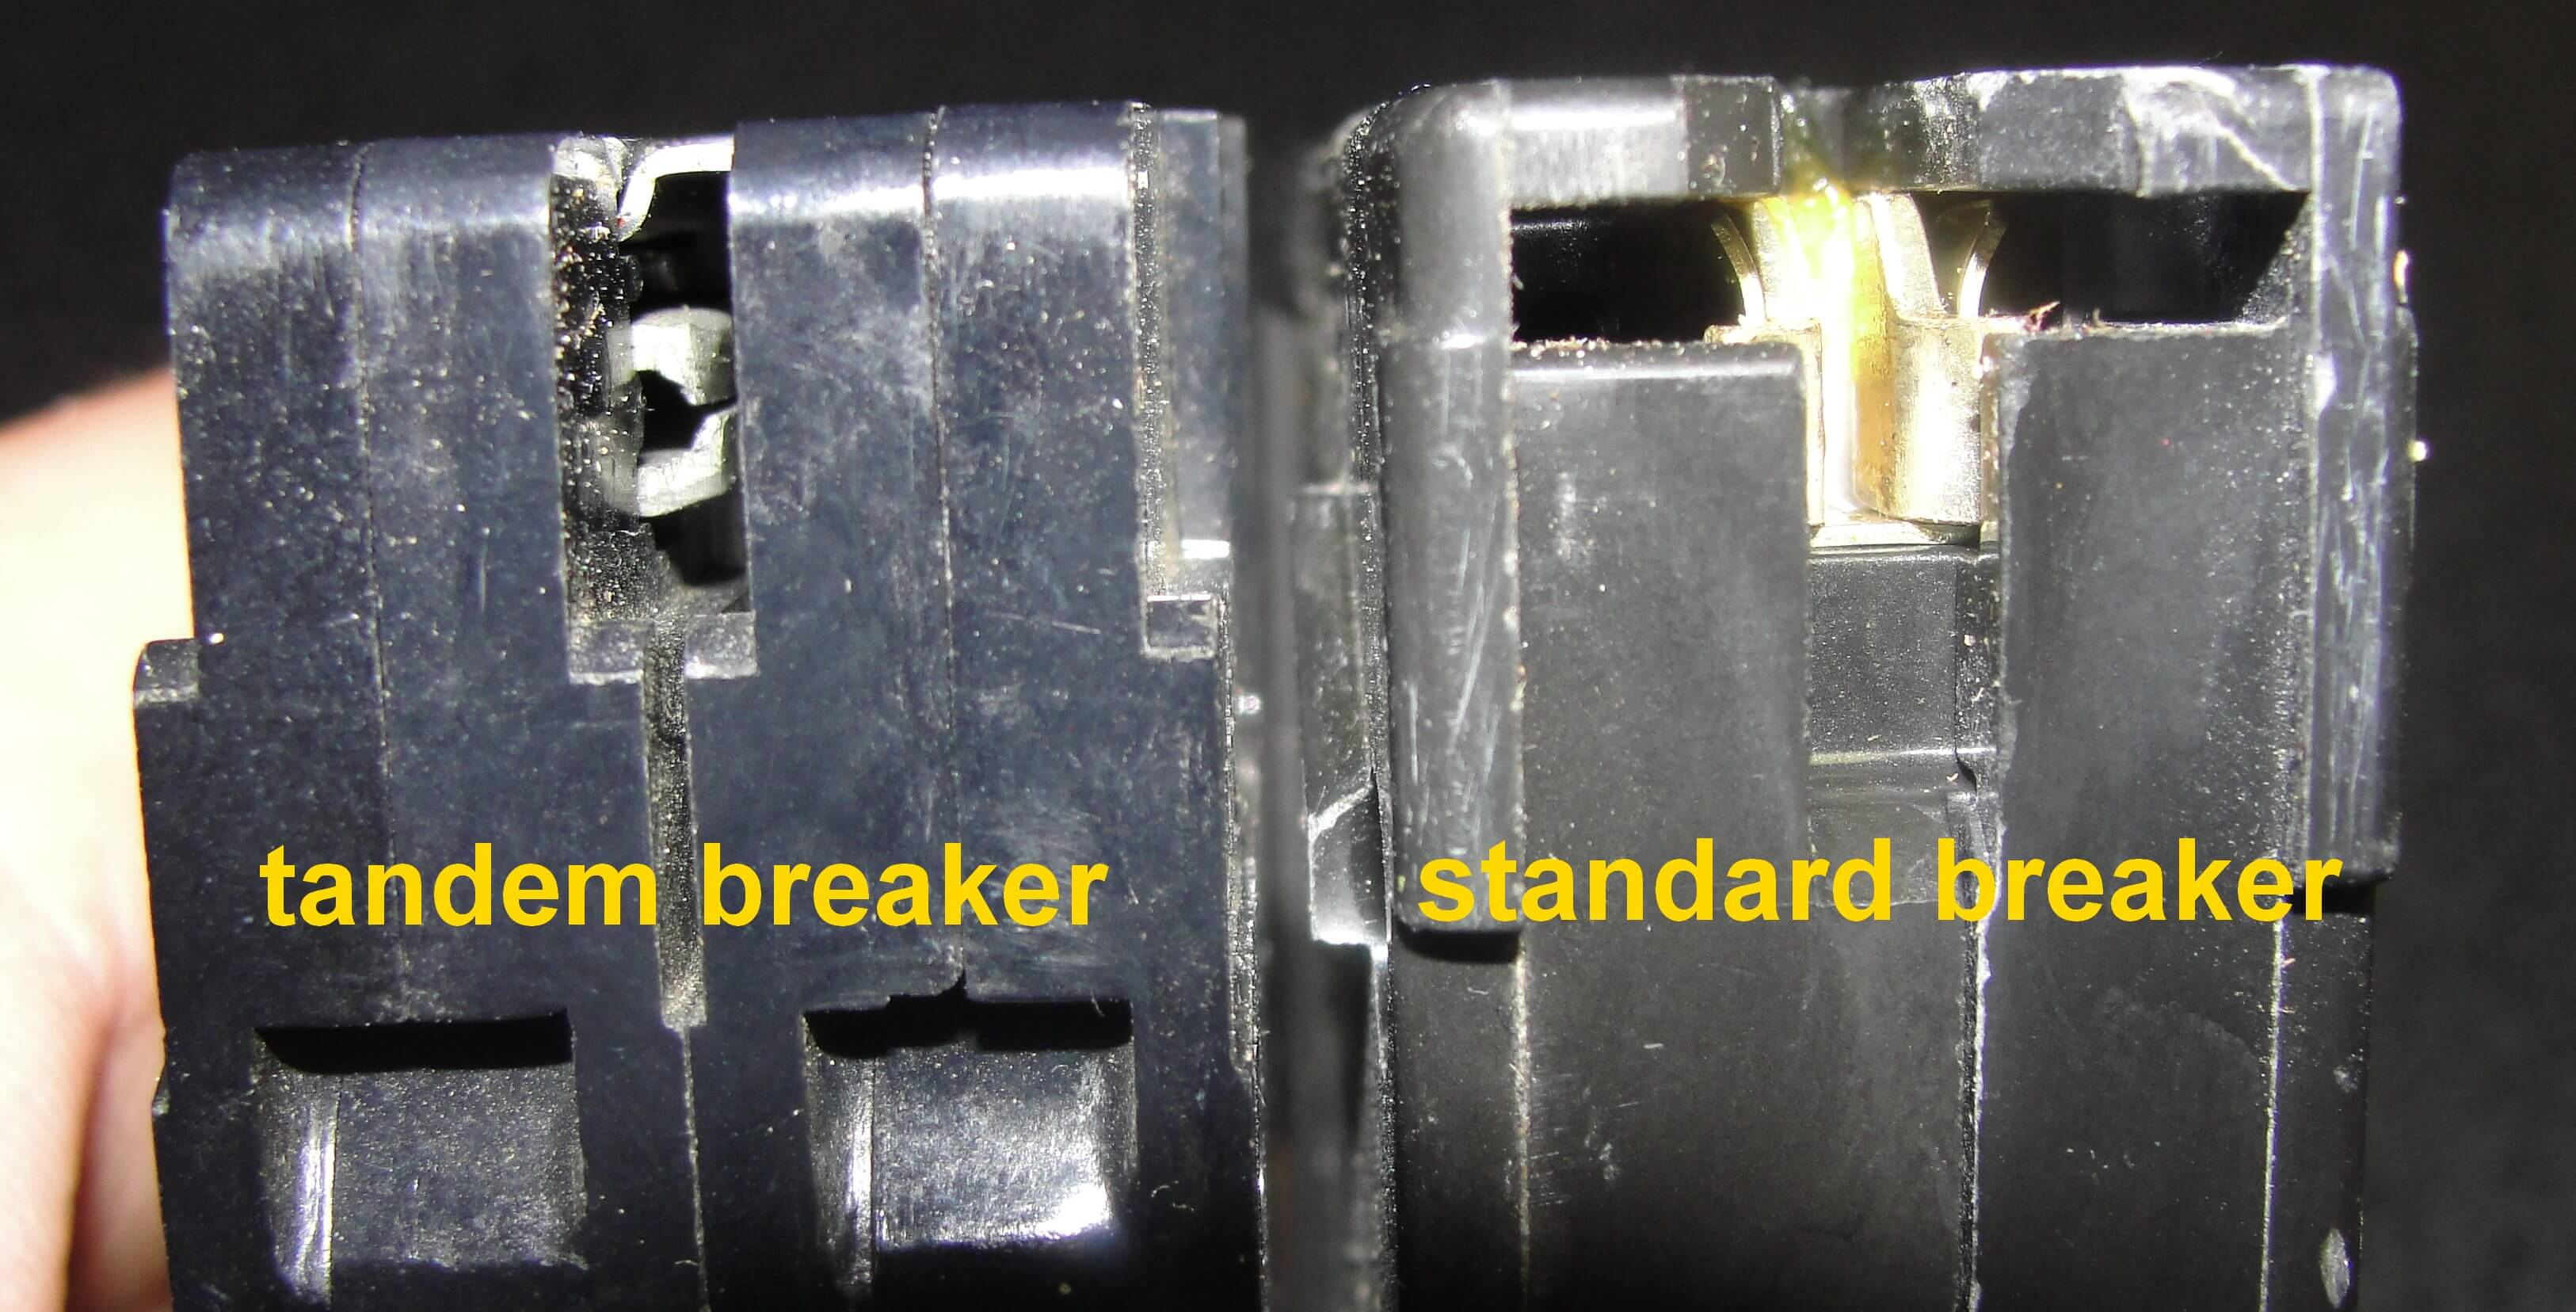 How To Know When Tandem Circuit Breakers Can Be Used Aka Cheater 20 Amp Breaker What Should A Gfci Or Is 15 Vs Standard